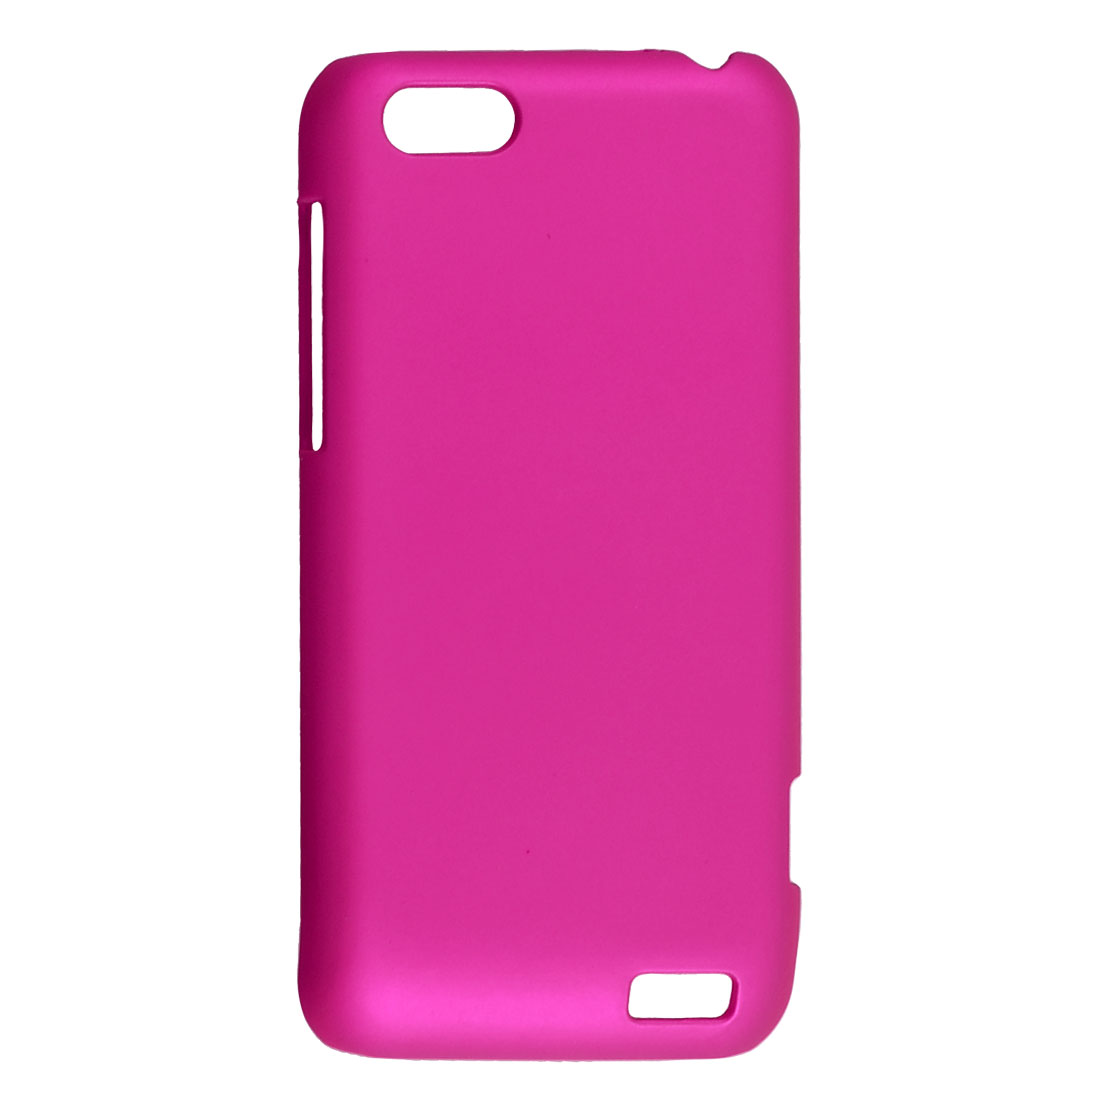 Magenta Rubberized Hard Plastic Back Case Shell for HTC One V